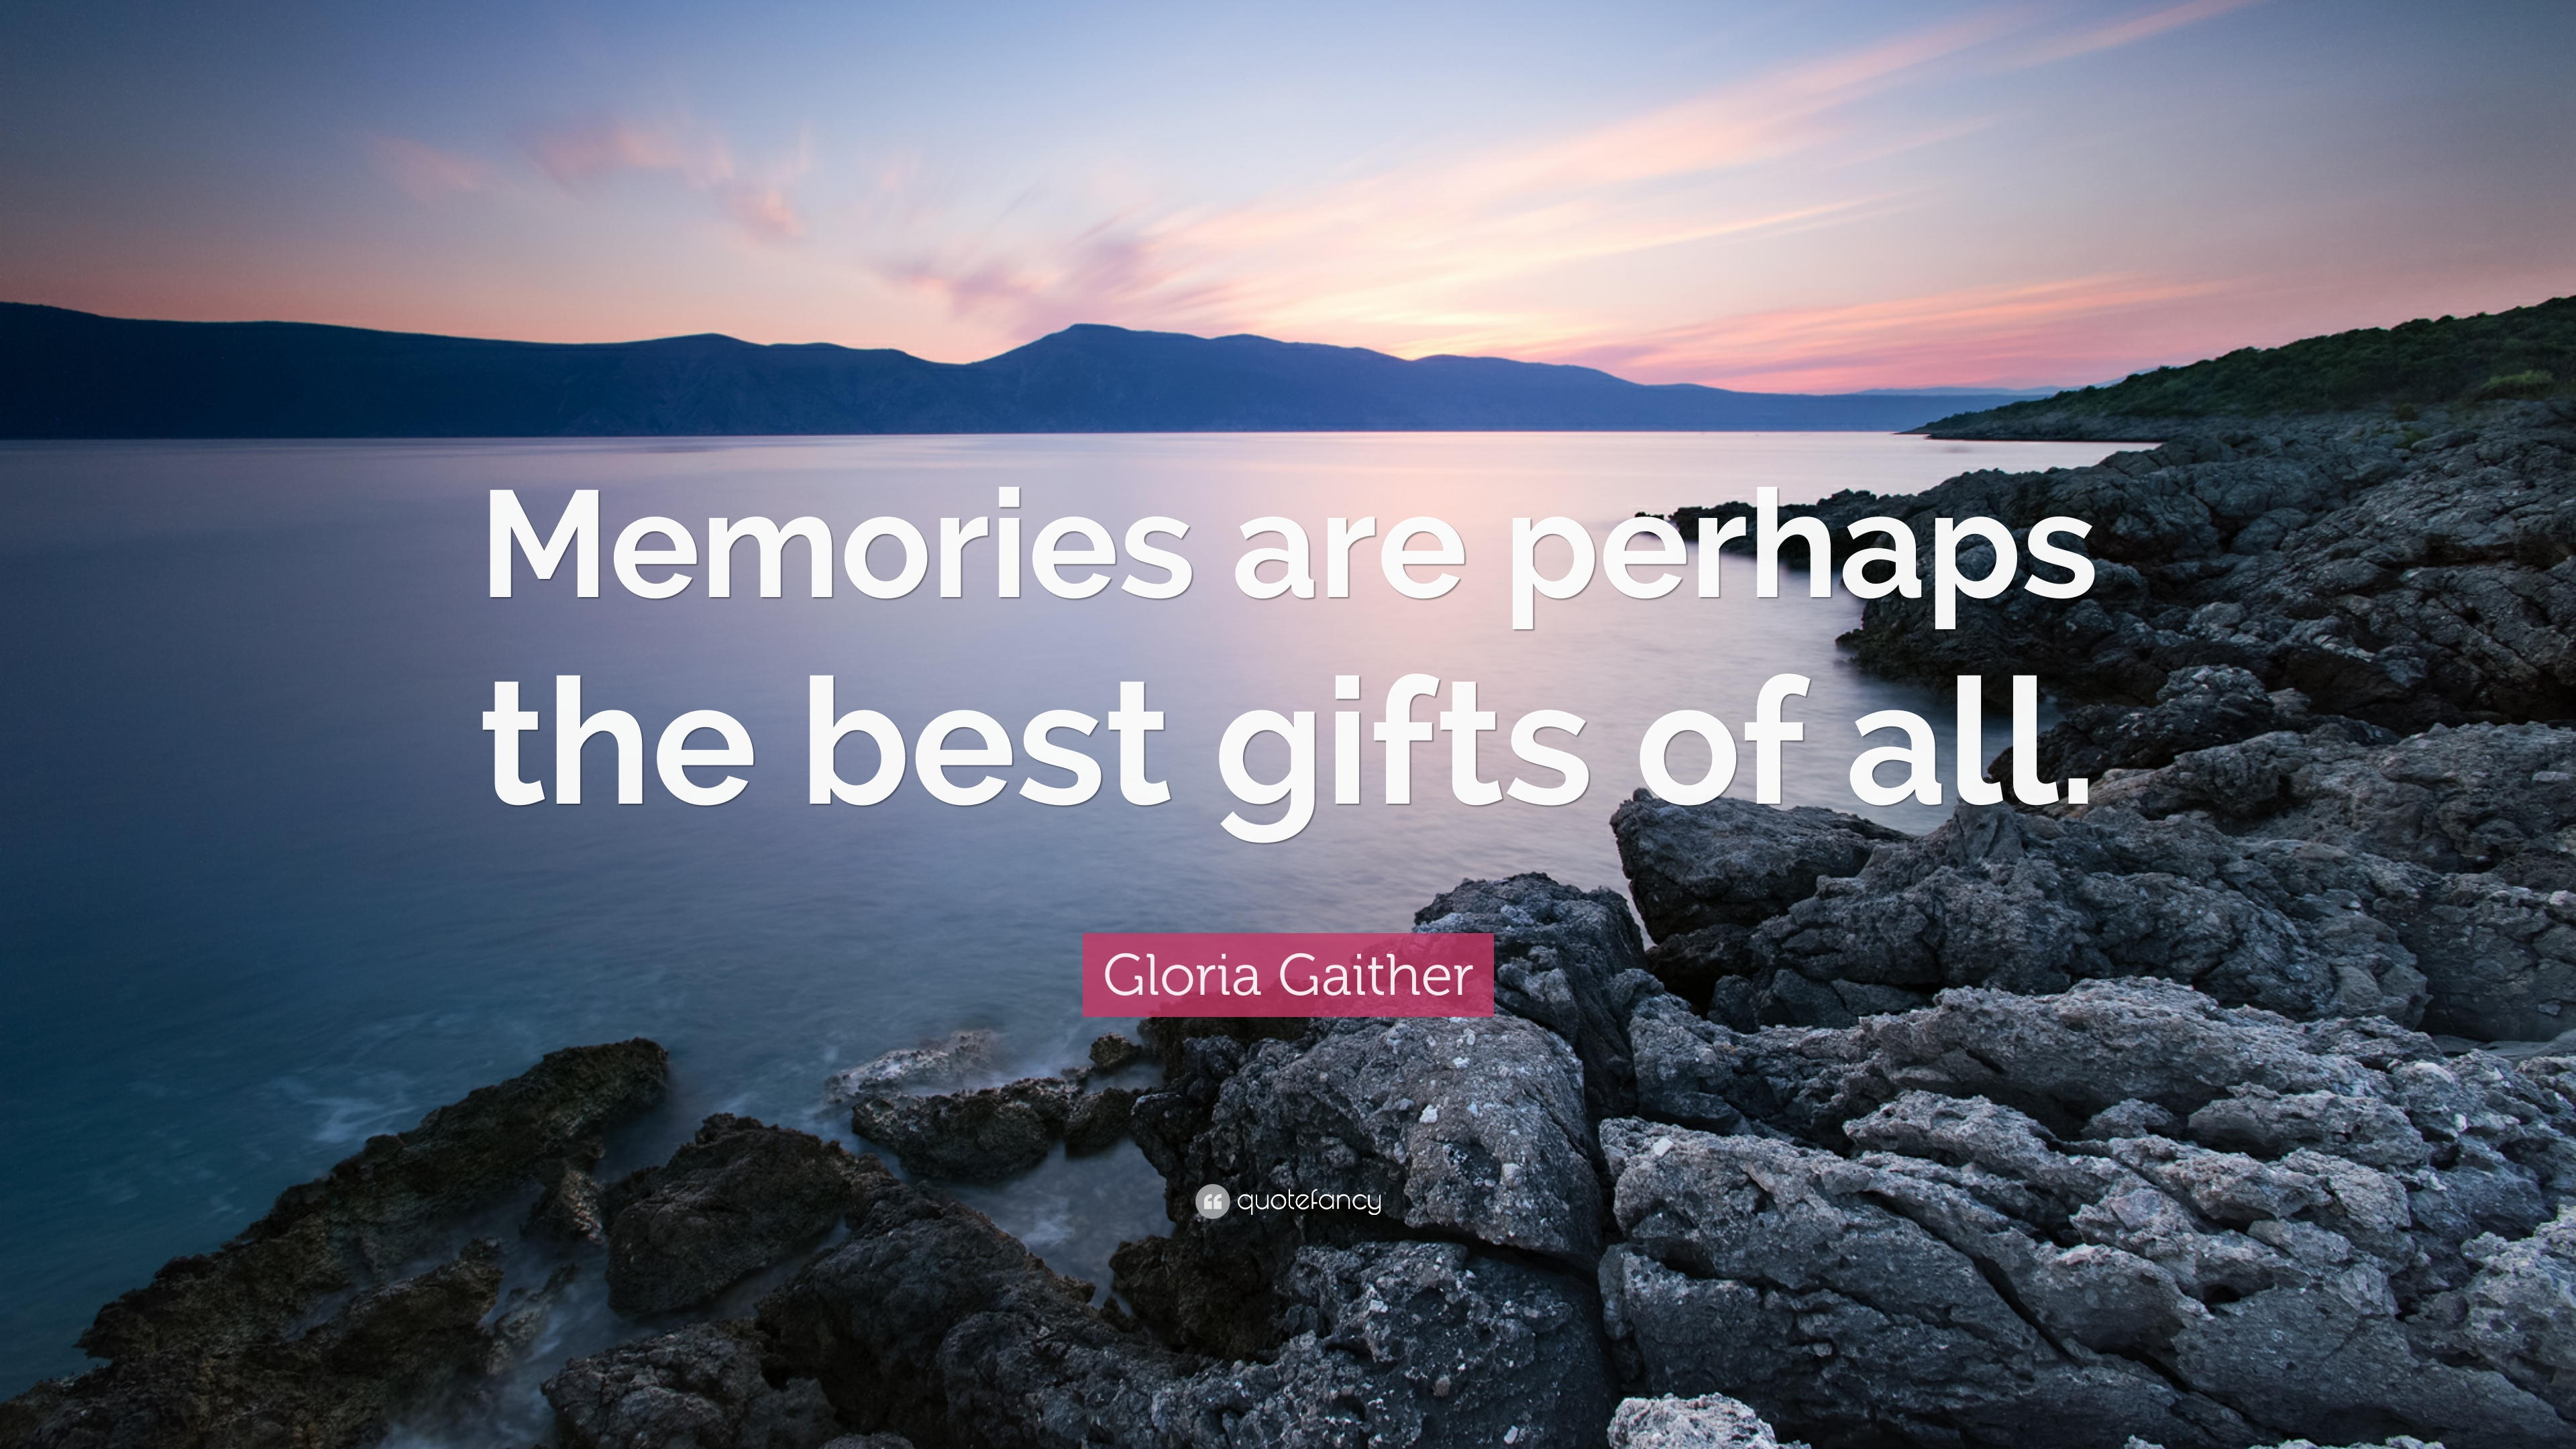 gloria gaither quote memories are perhaps the best gifts of all